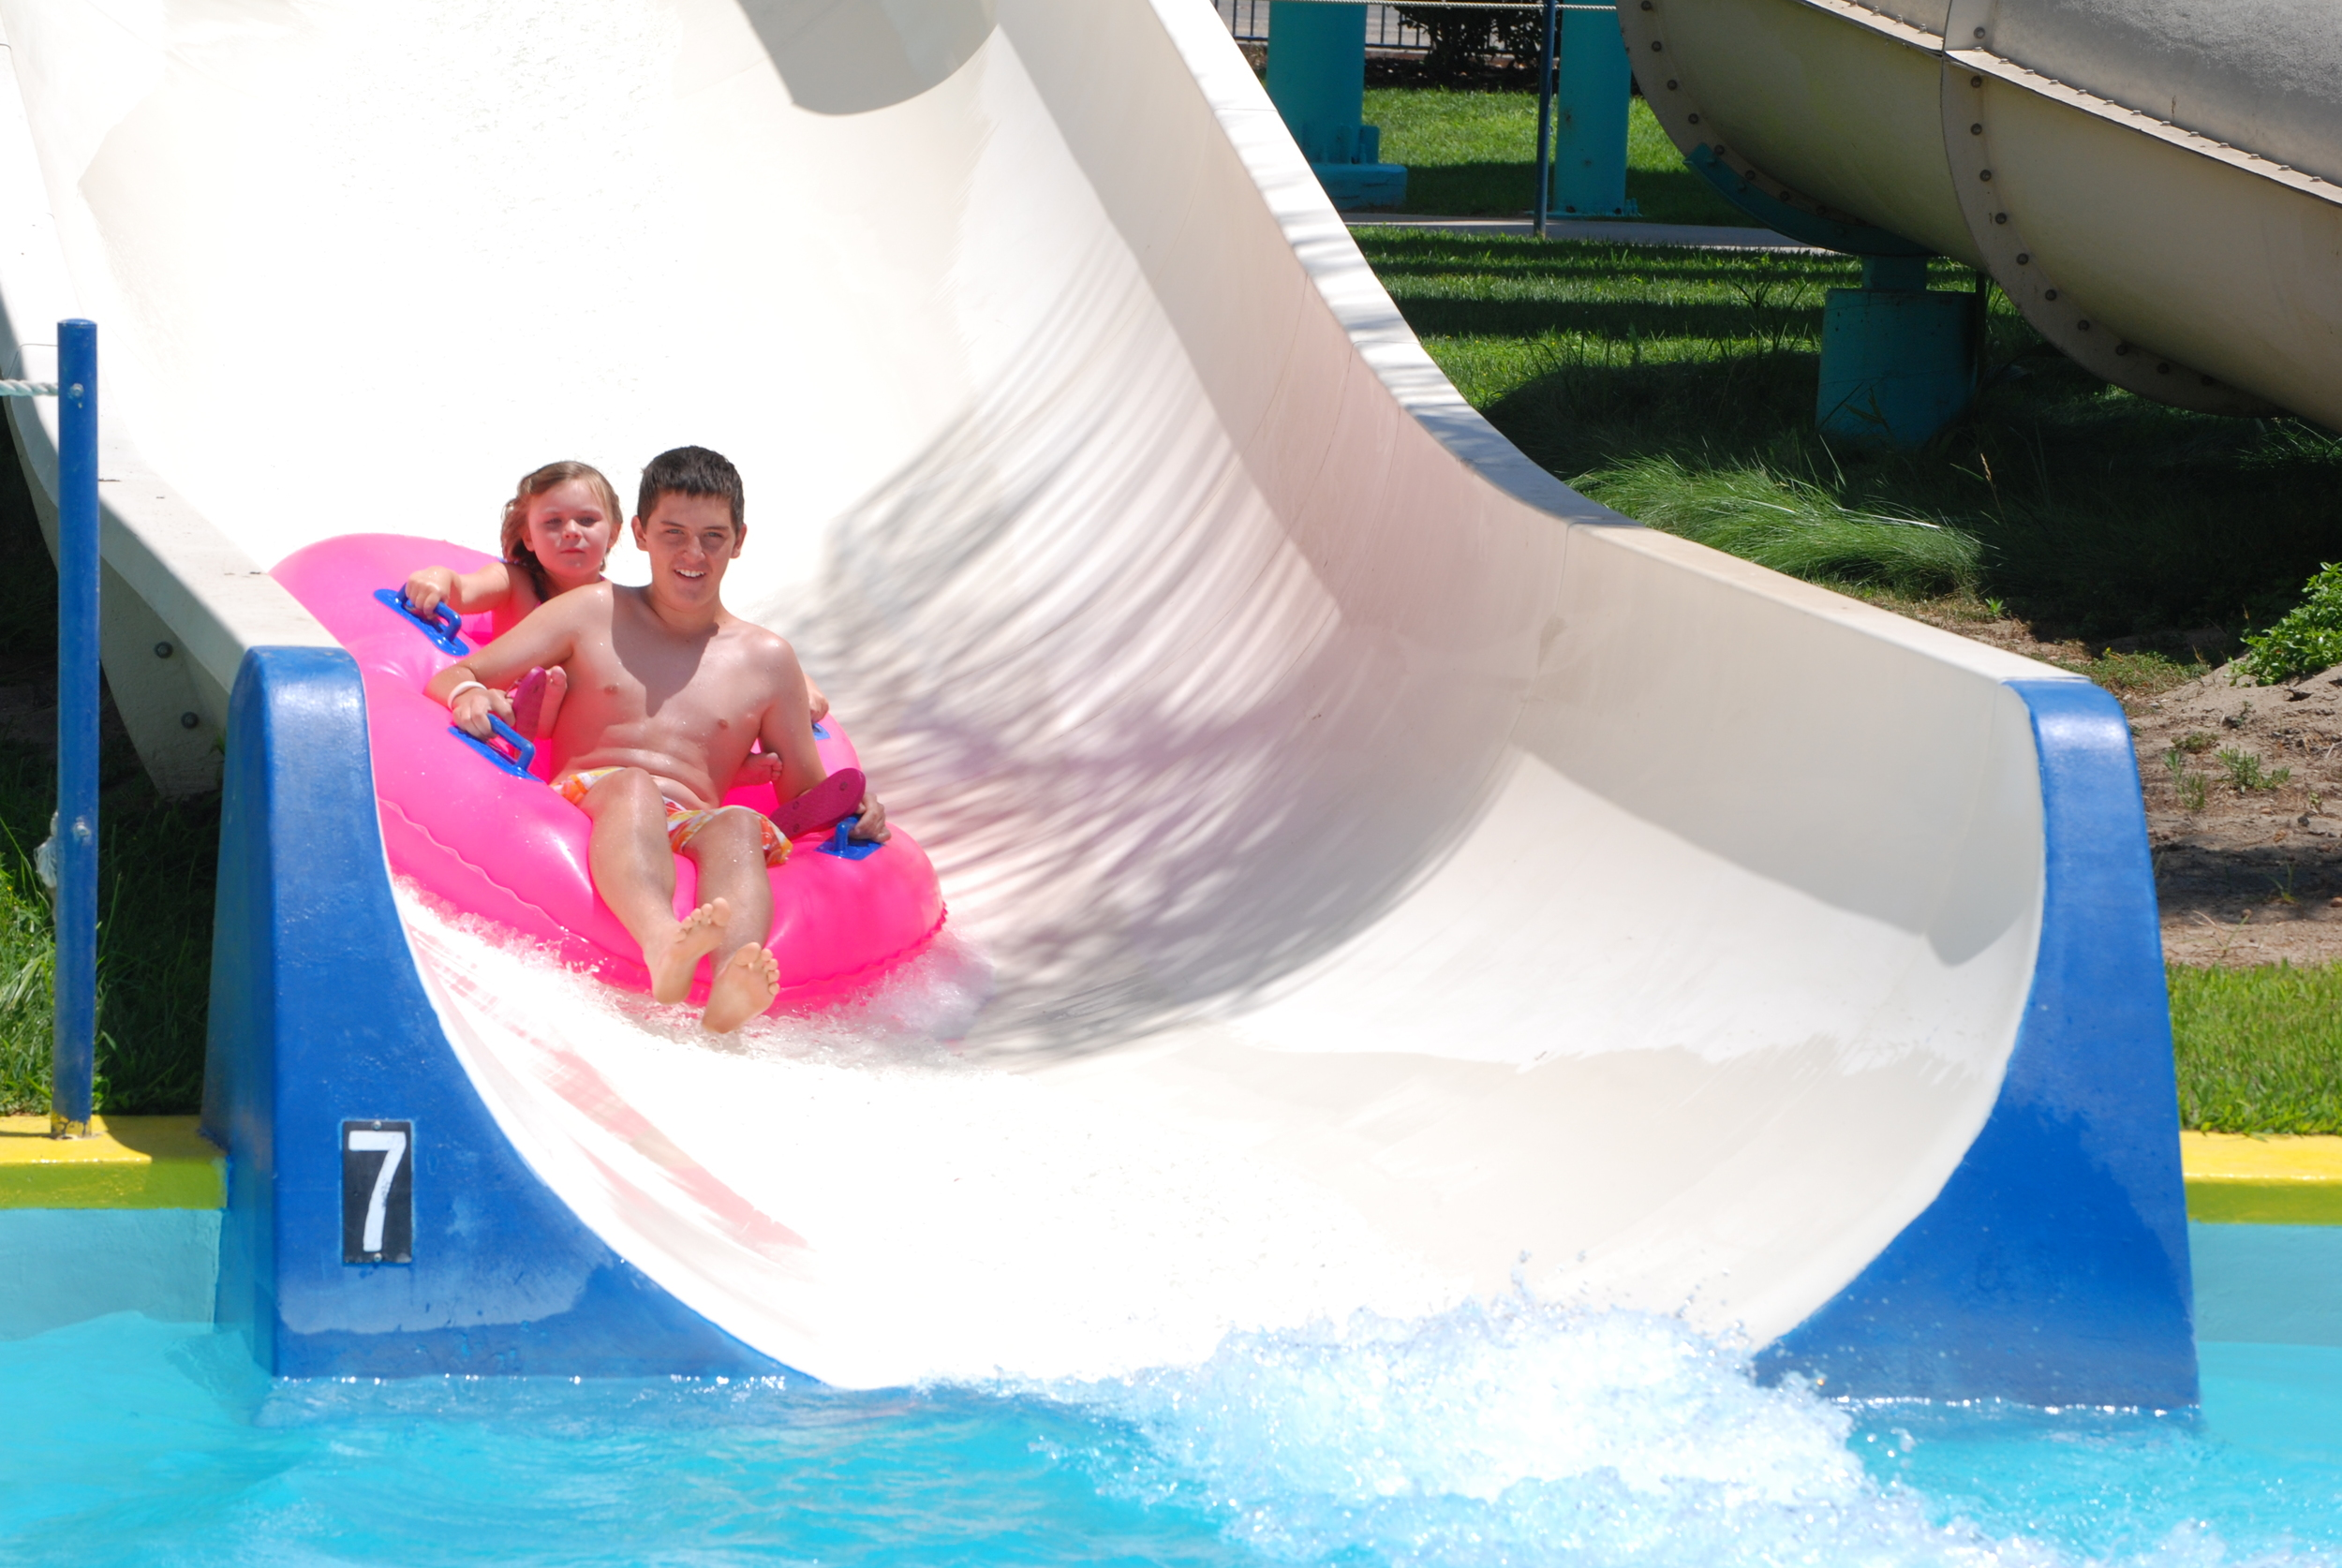 """Launching from the current of the RipTide surf pool, The Flusher sends riders splashin' straight into The Nile River. This attraction requires a rental tube. Minimum Rider Height: 48"""""""